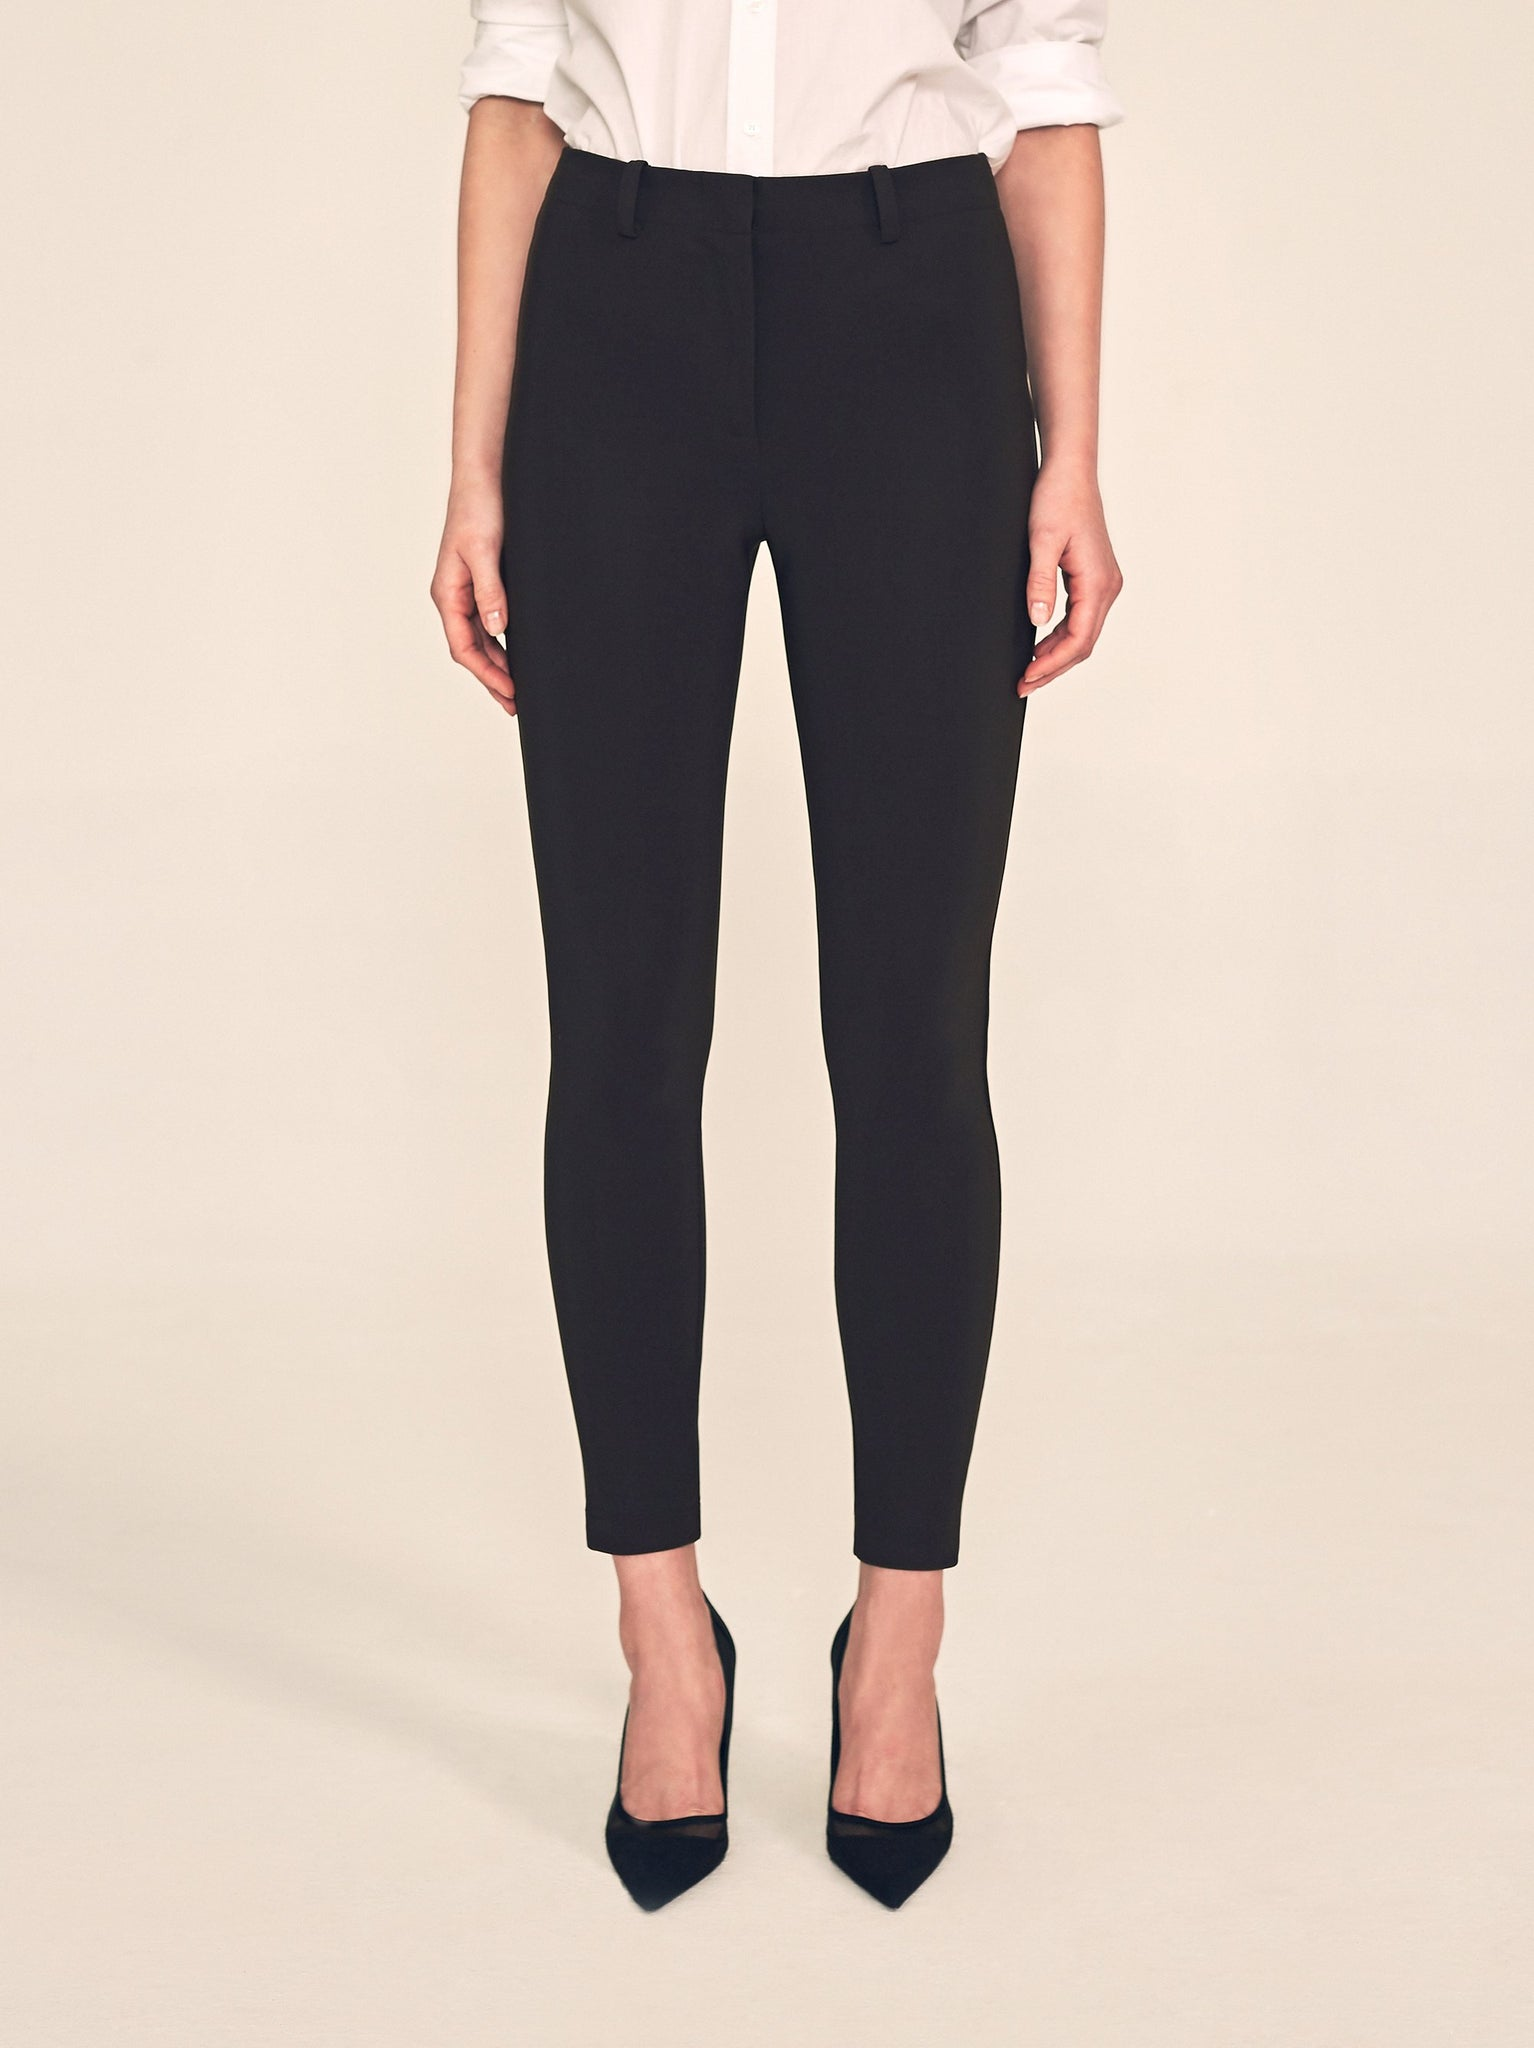 "BIANCA Skinny / 29"" Inseam / Black / Secondary"